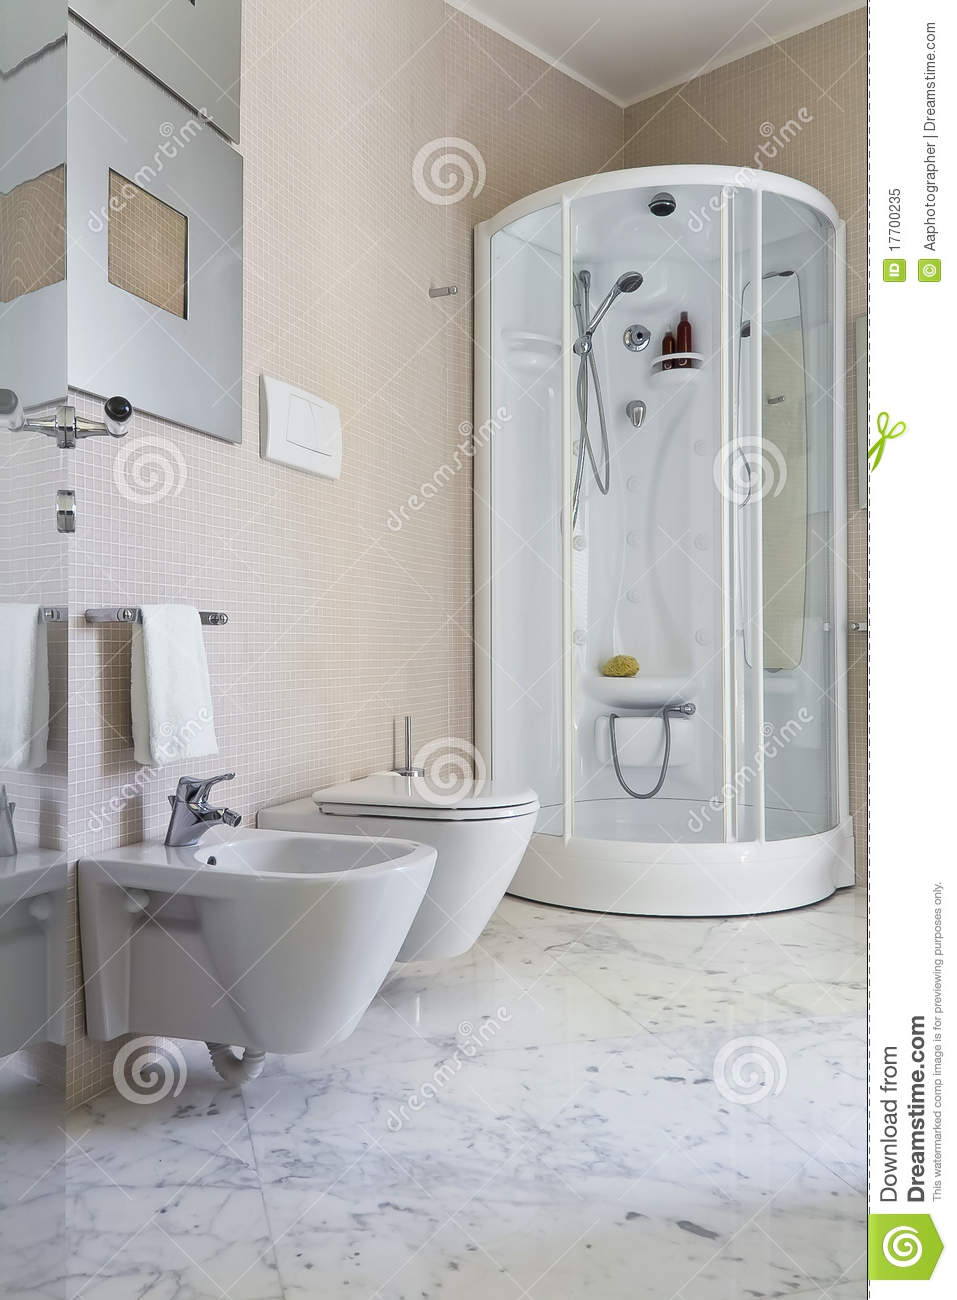 Detail of modern bathroom royalty free stock photo image for Detail in contemporary bathroom design